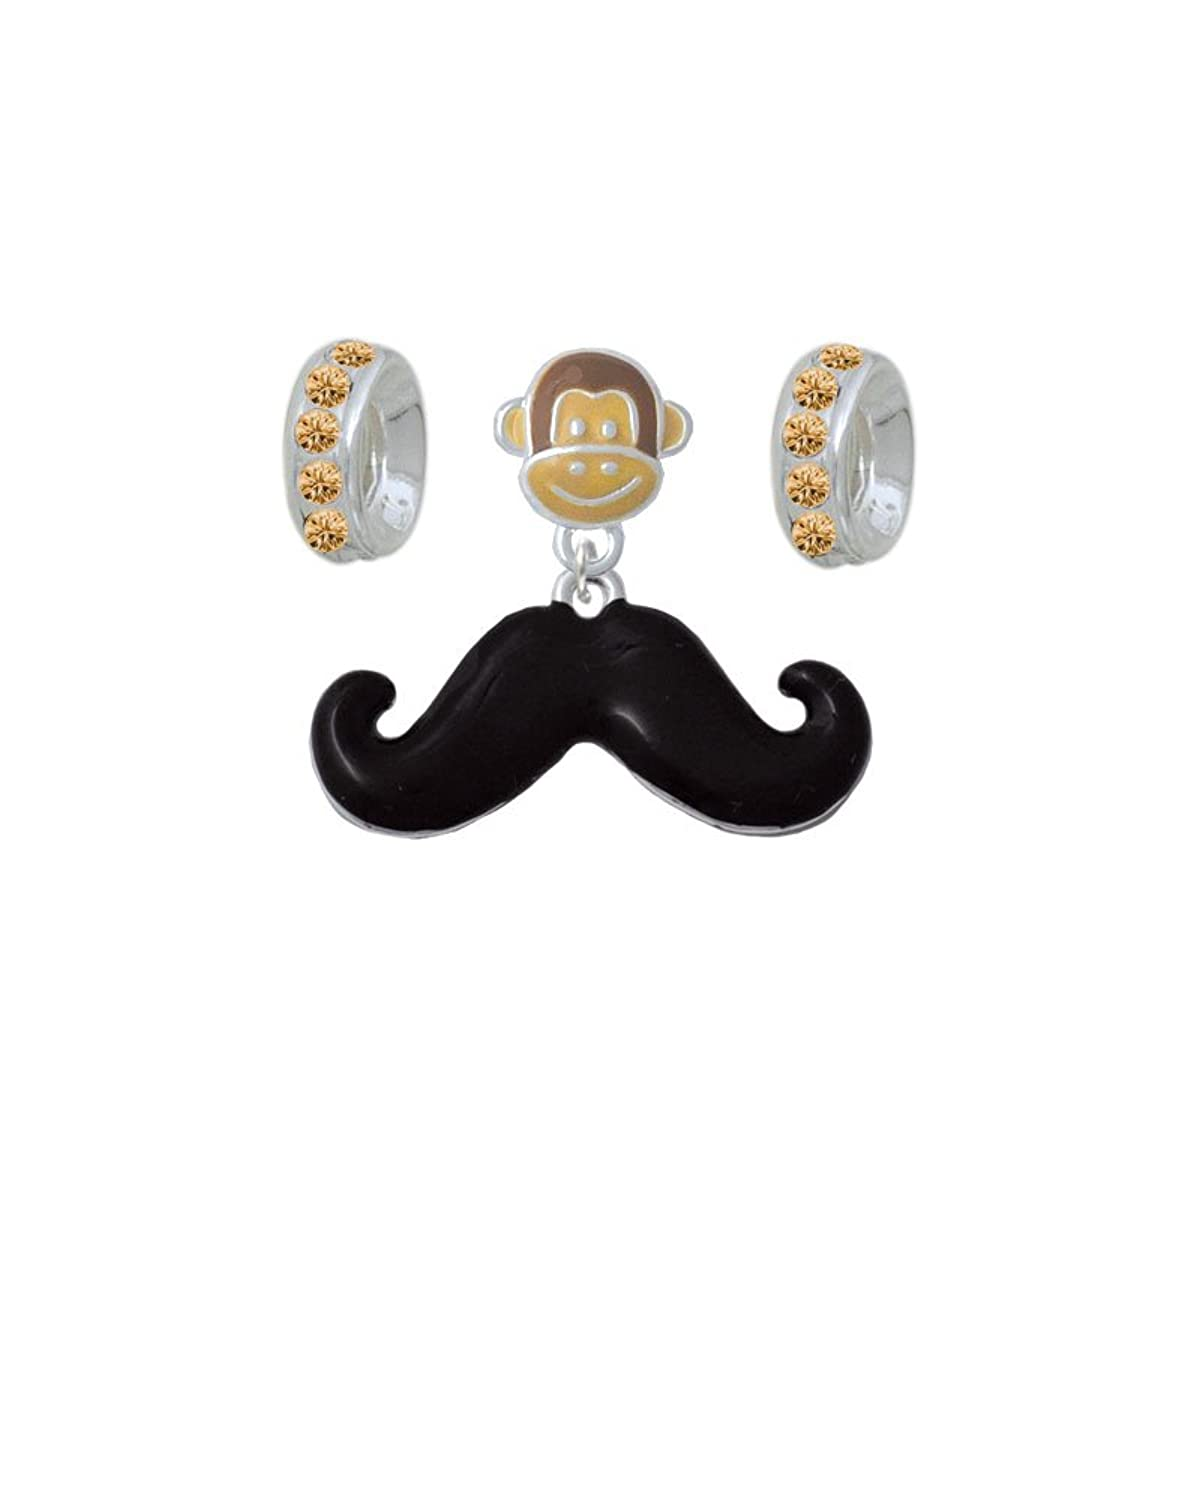 Large Black Enamel Mustache Monkey Charm Hanger with Crystal Rondelle Beads (Set of 3)